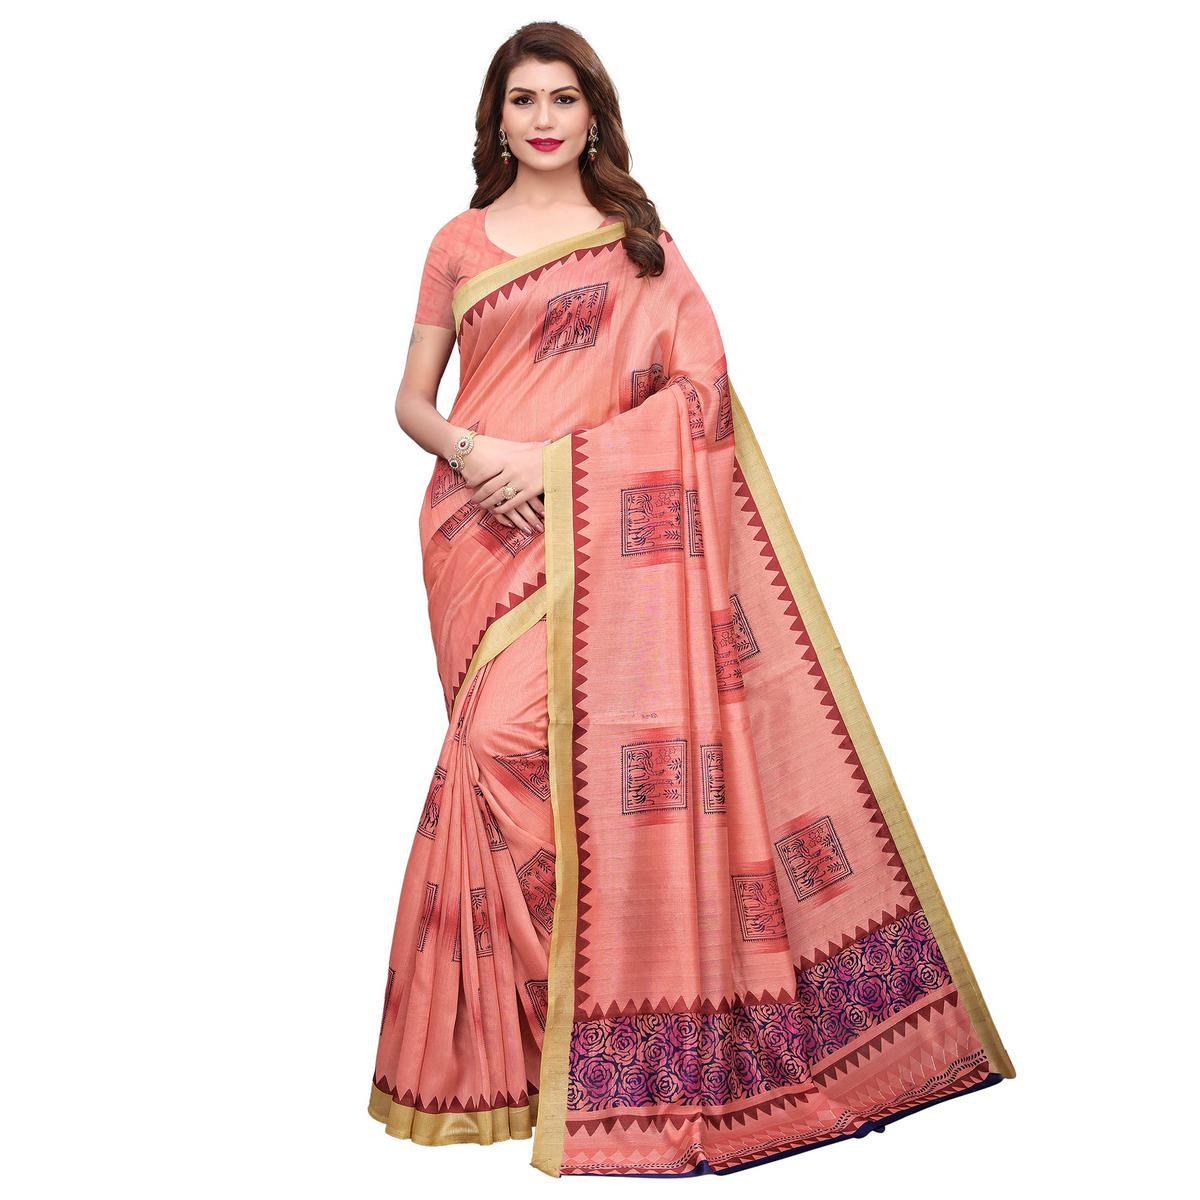 Alluring Peach Colored Festive Wear Printed Bhagalpuri Silk Saree